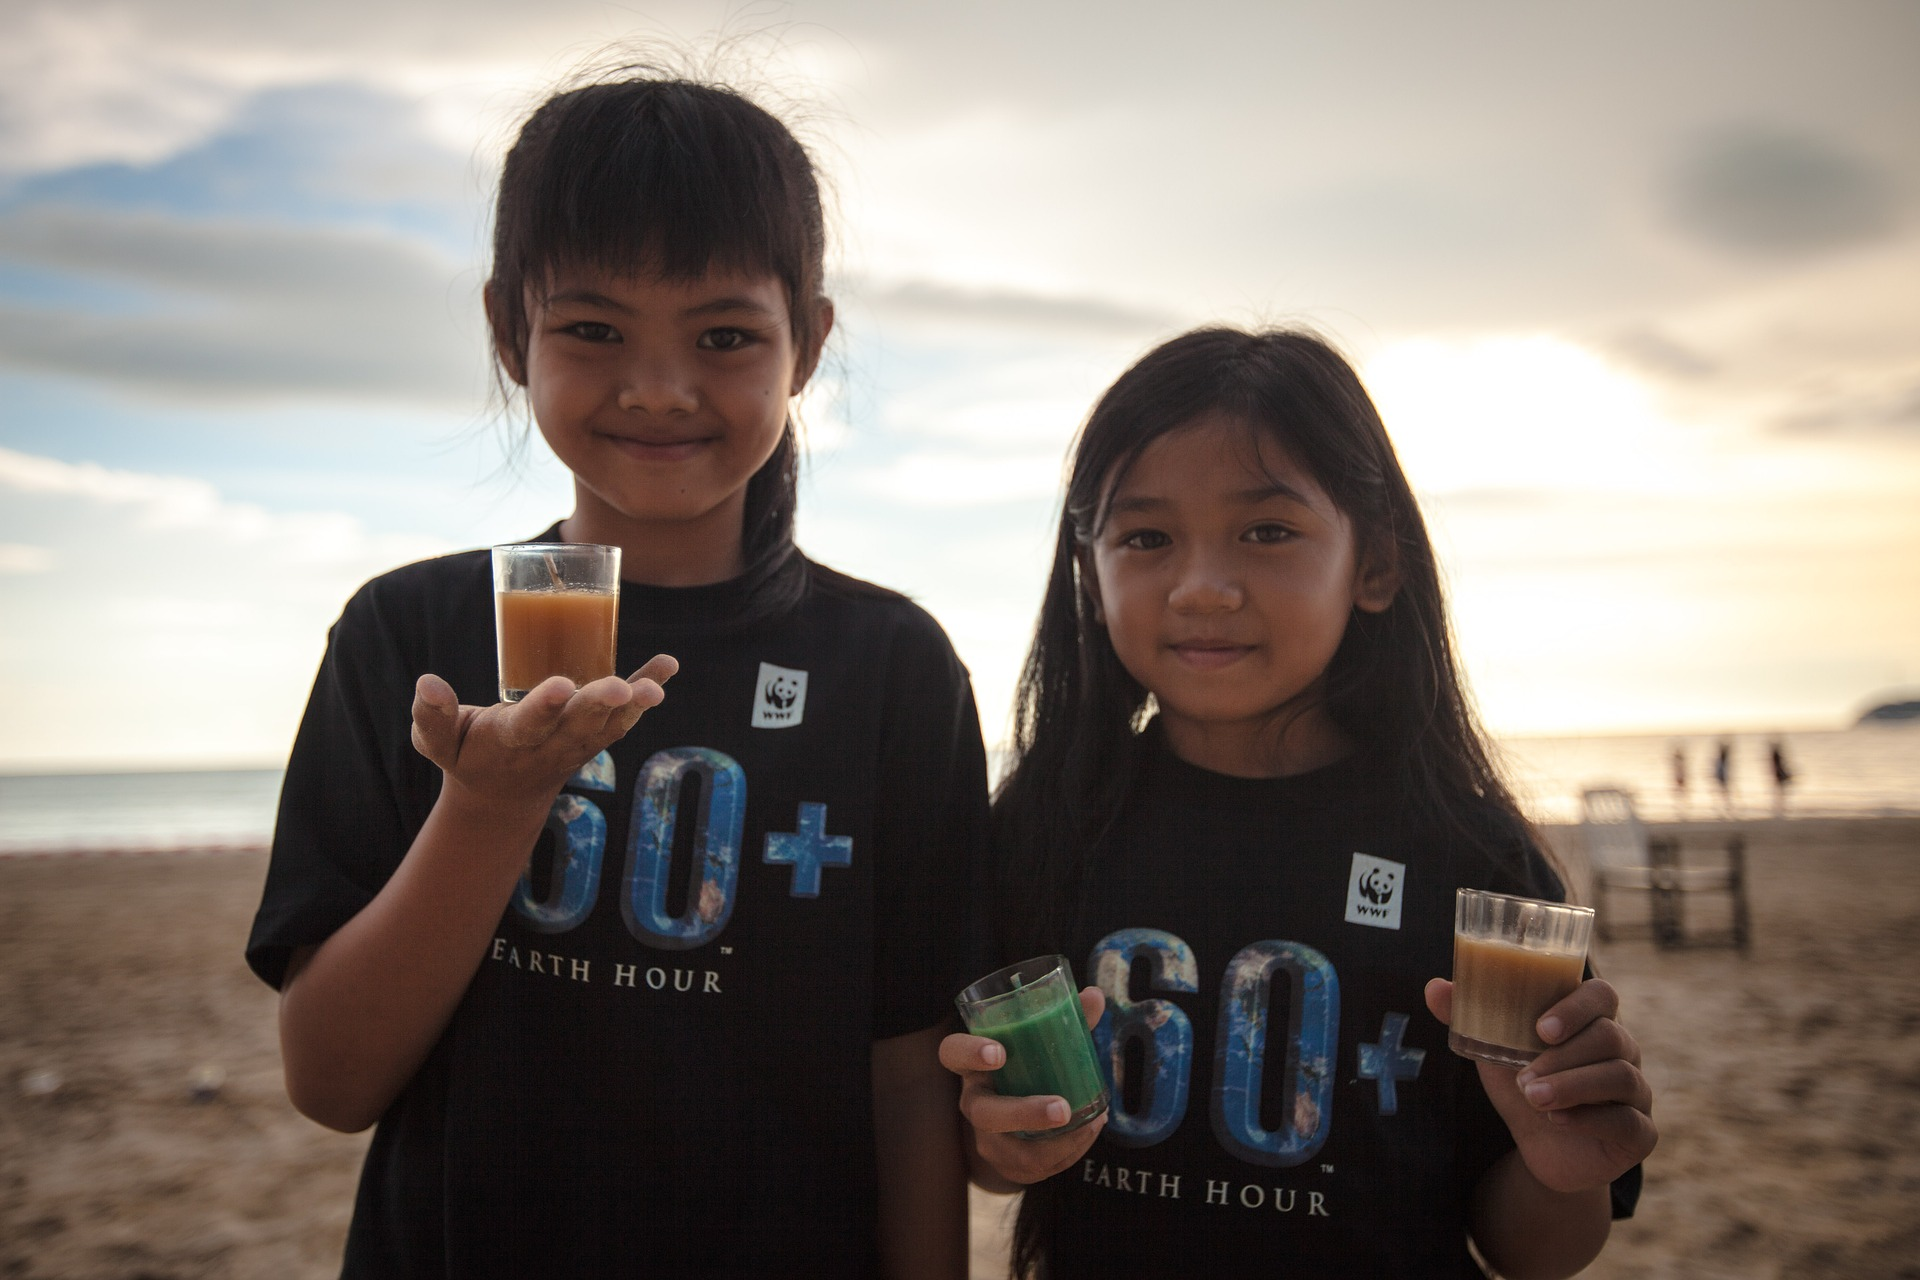 Two young girls holding glasses with smoothie and wearing Earth Hour shirts.